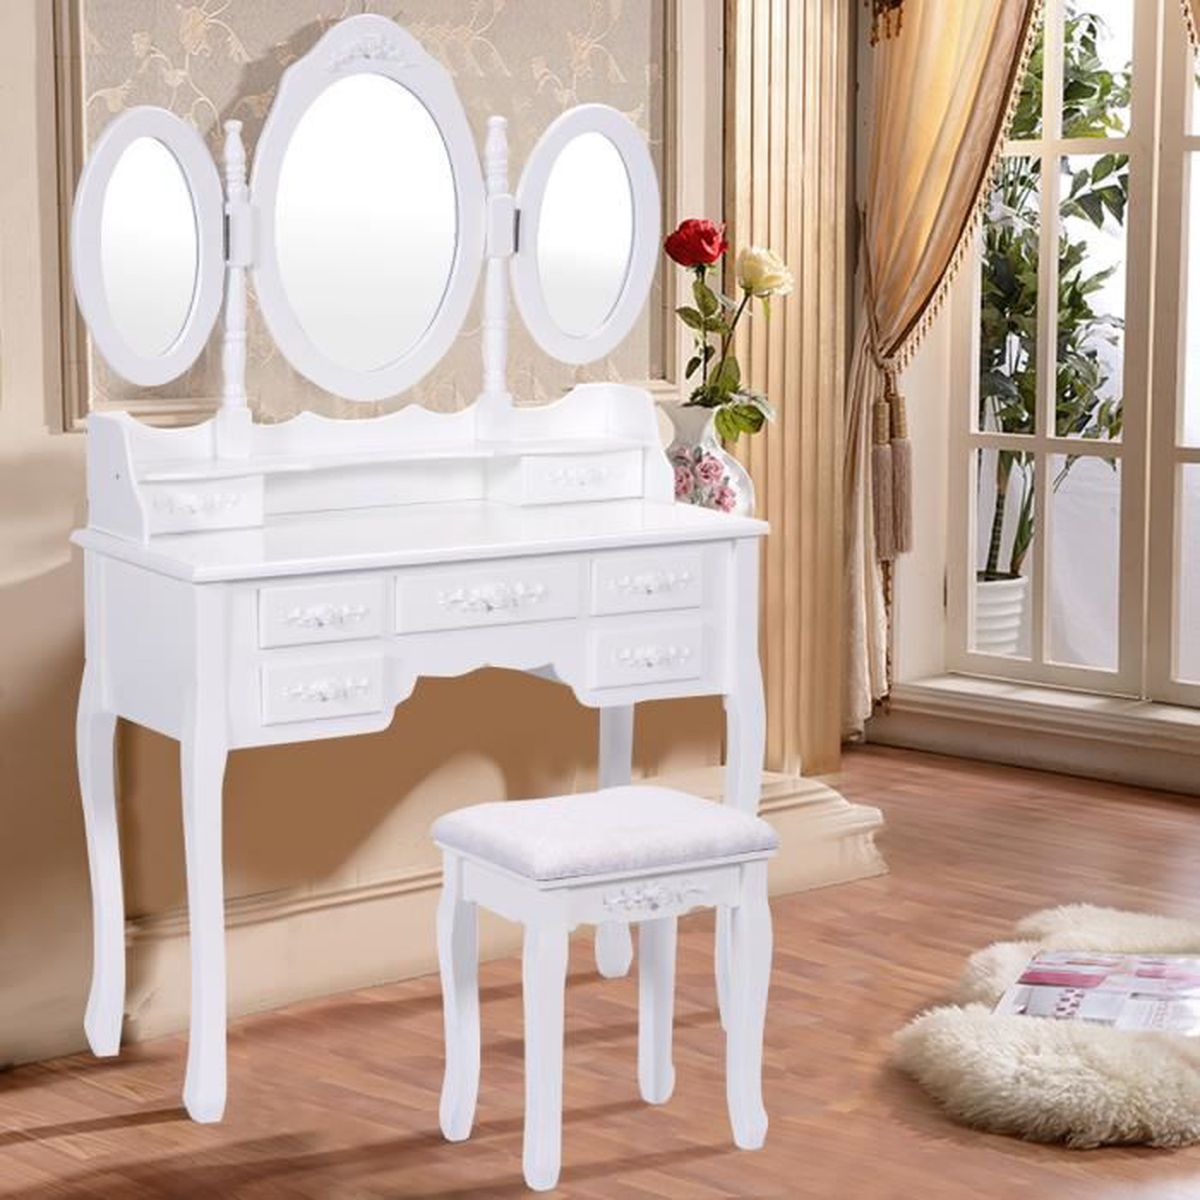 coiffeuse tabouret avec miroir table de maquillage chambre 7 tiroirs achat vente. Black Bedroom Furniture Sets. Home Design Ideas